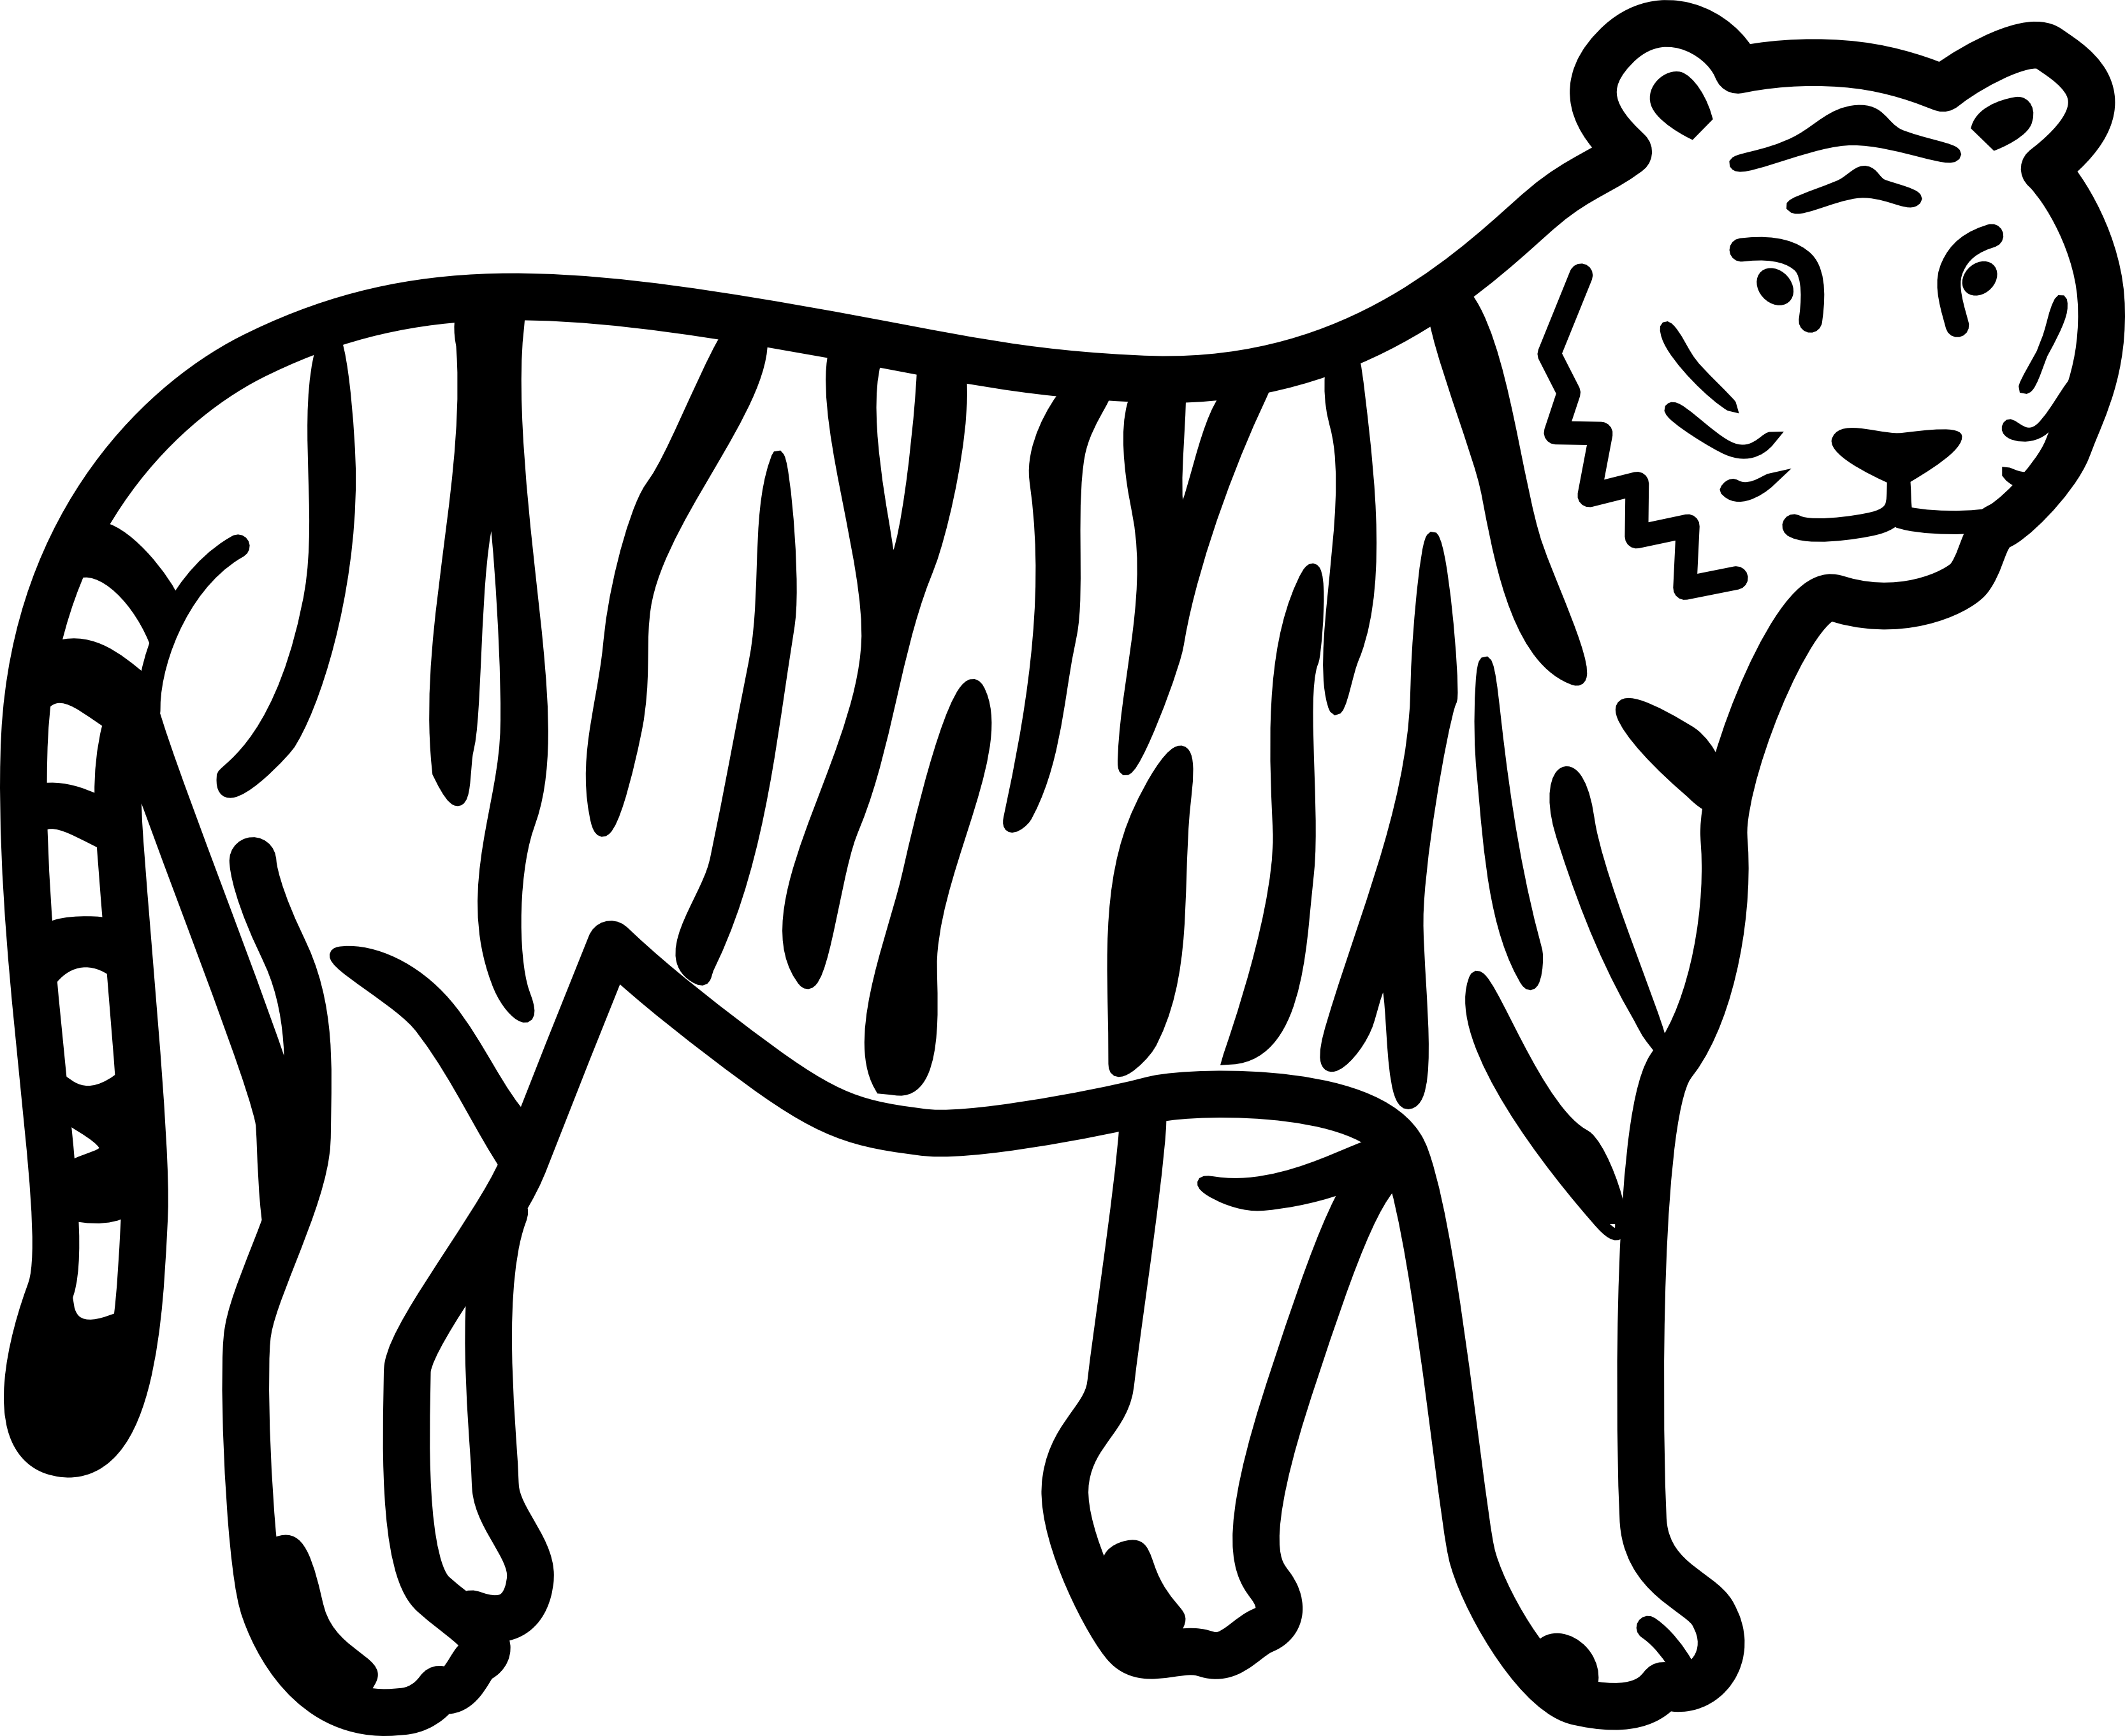 Tiger Clipart Black And White Clipart Panda